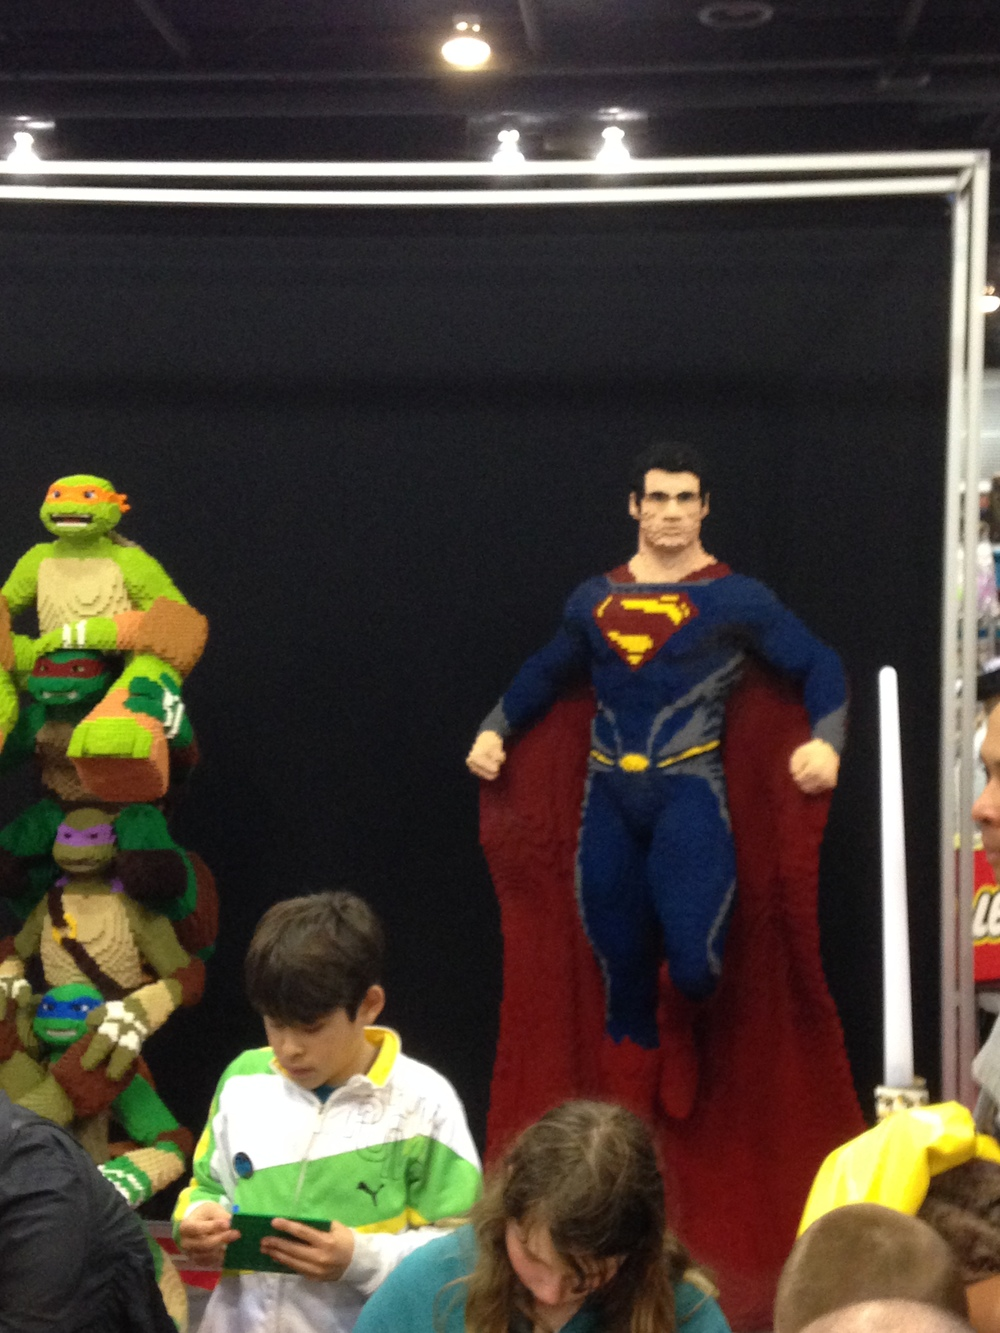 The Ninja Turtles, Superman.....and Batman in the mix too!